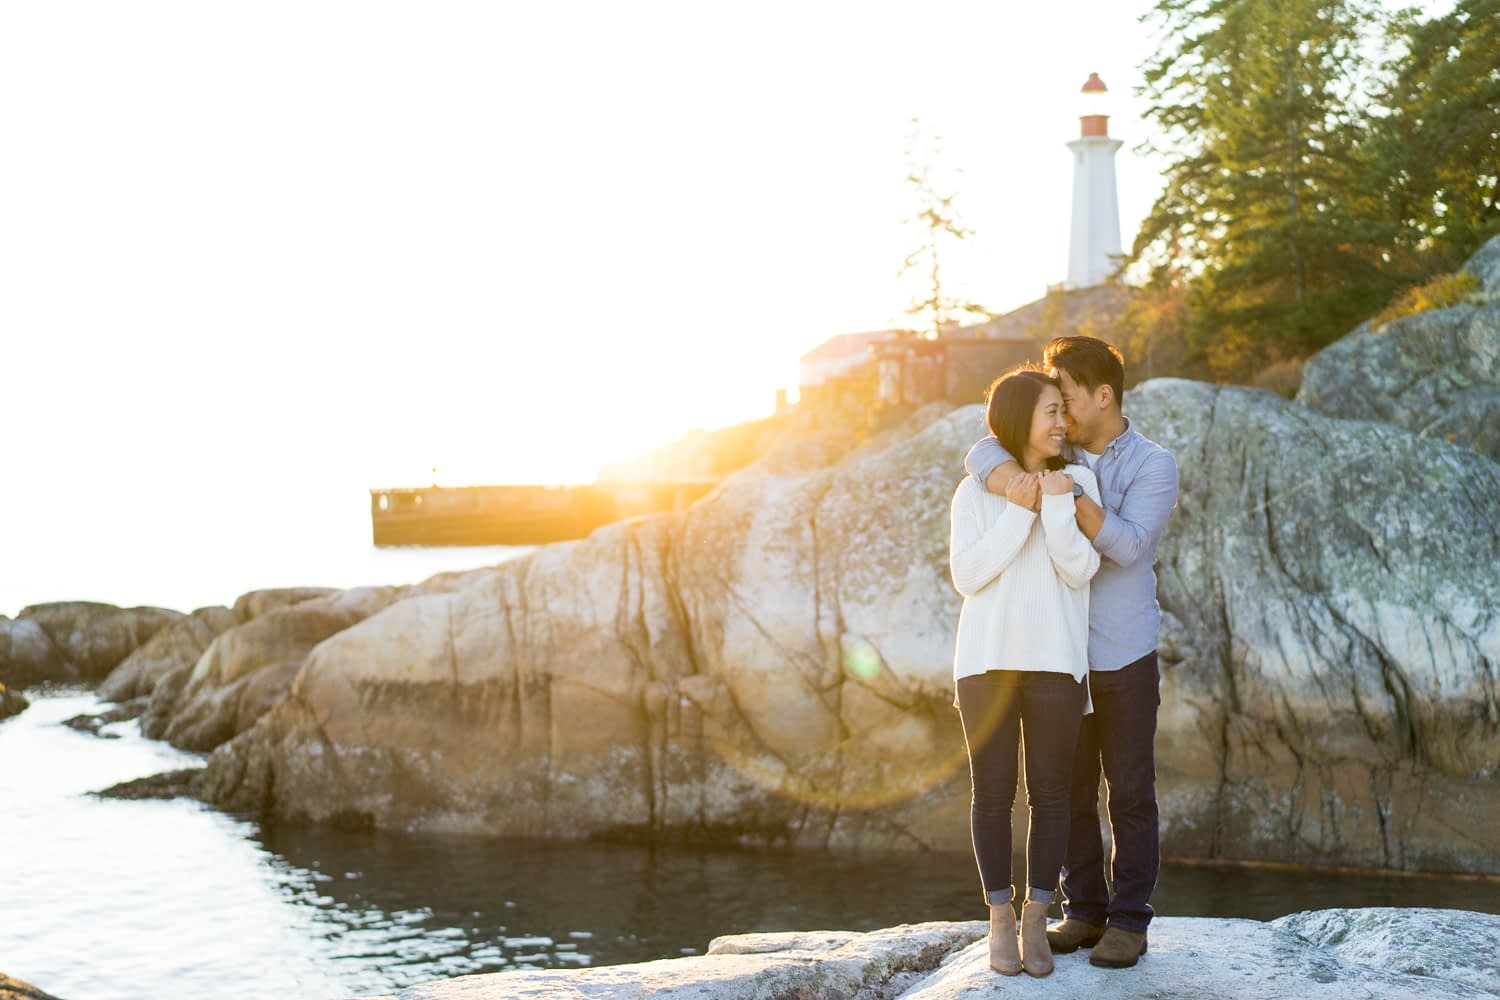 Lighthouse Park Engagement Photo Session during sunset